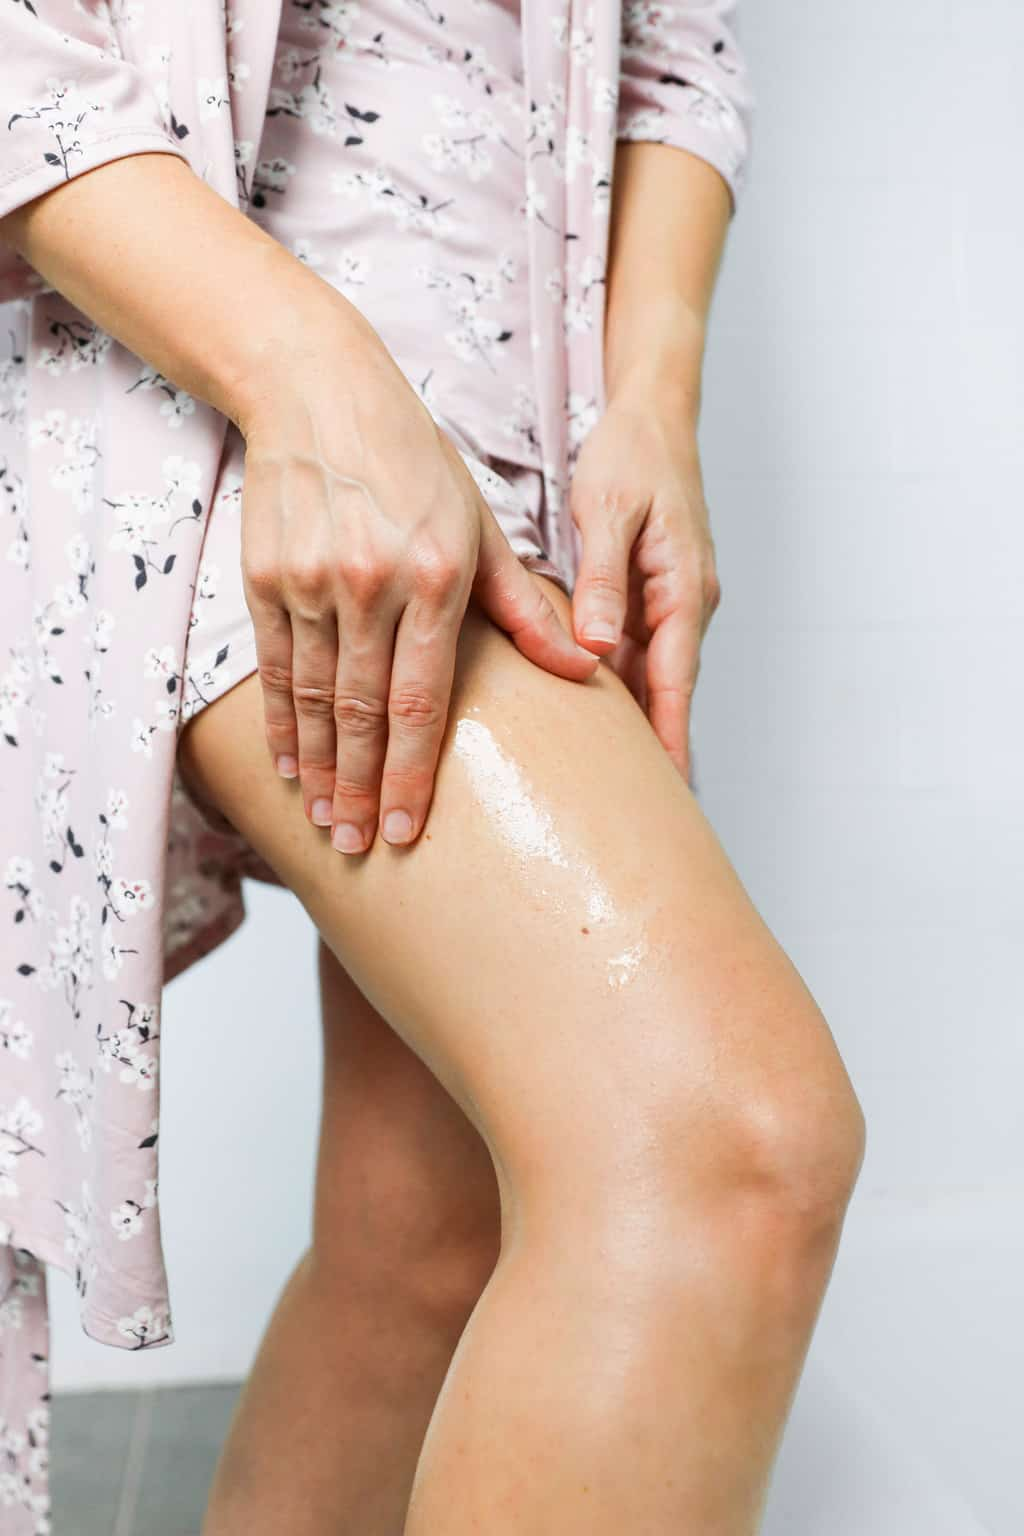 Honey cellulite massage how to